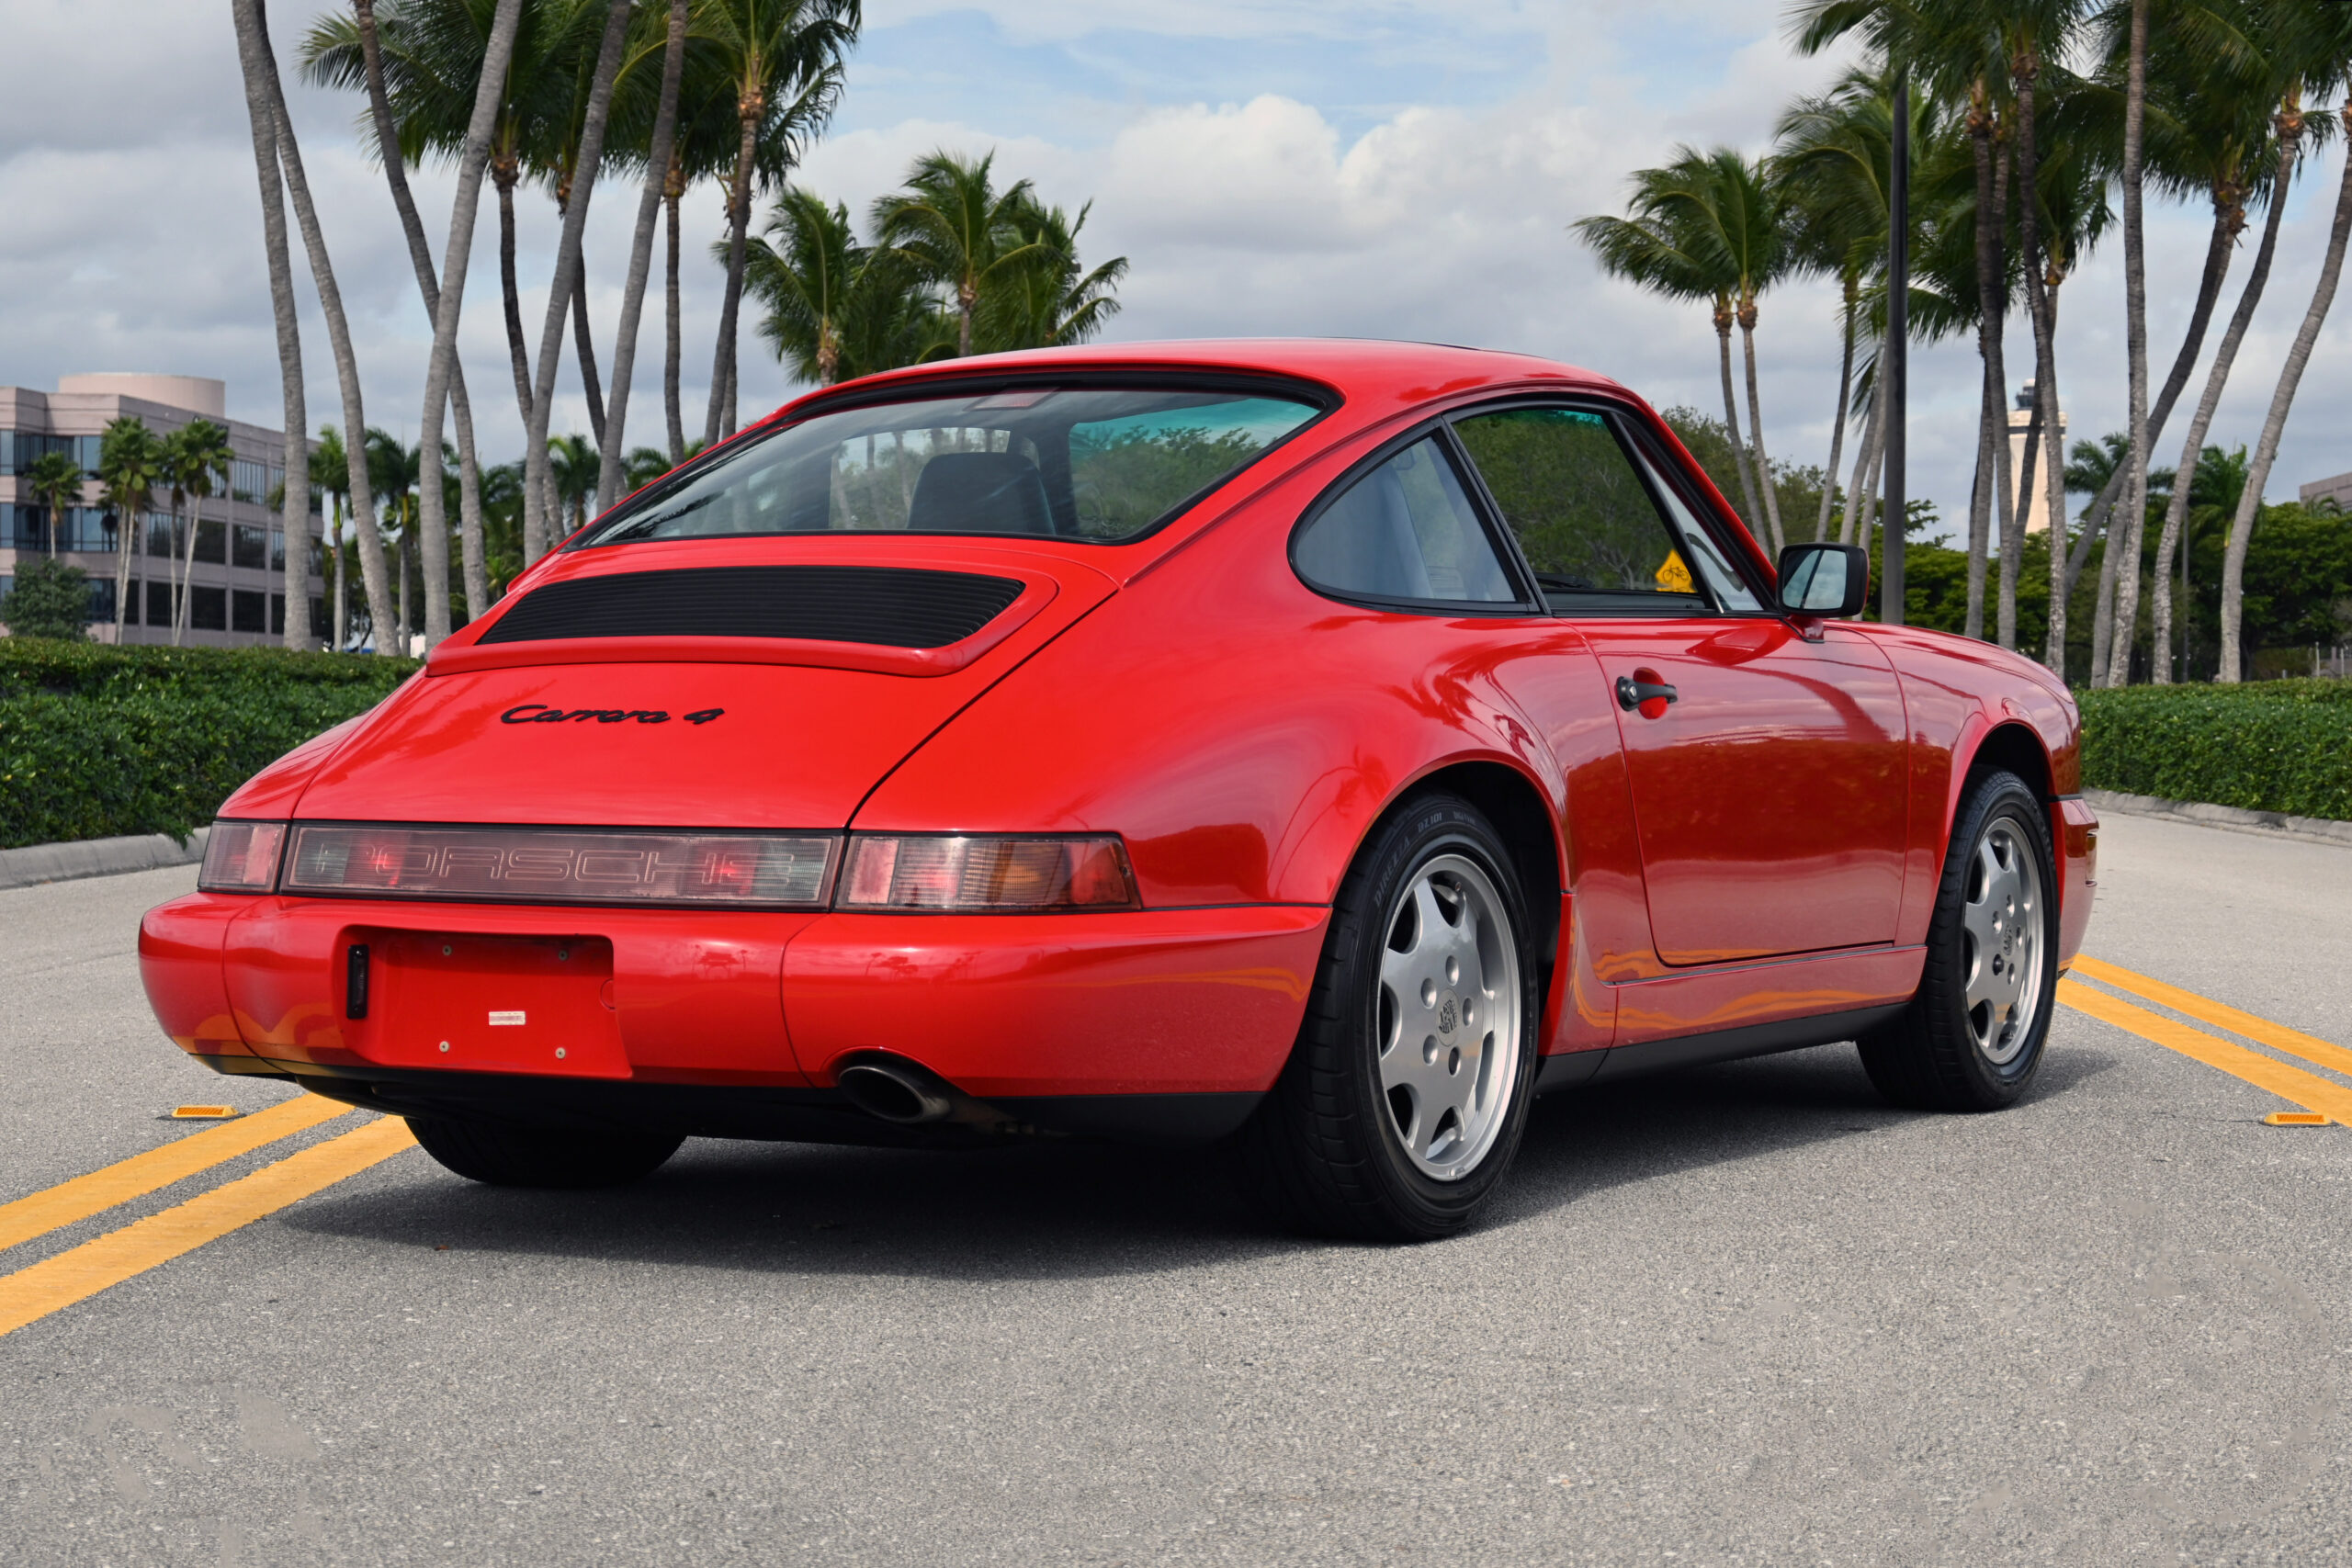 1989 964 Carrera 4, low miles, Original Paint and condition, documented service